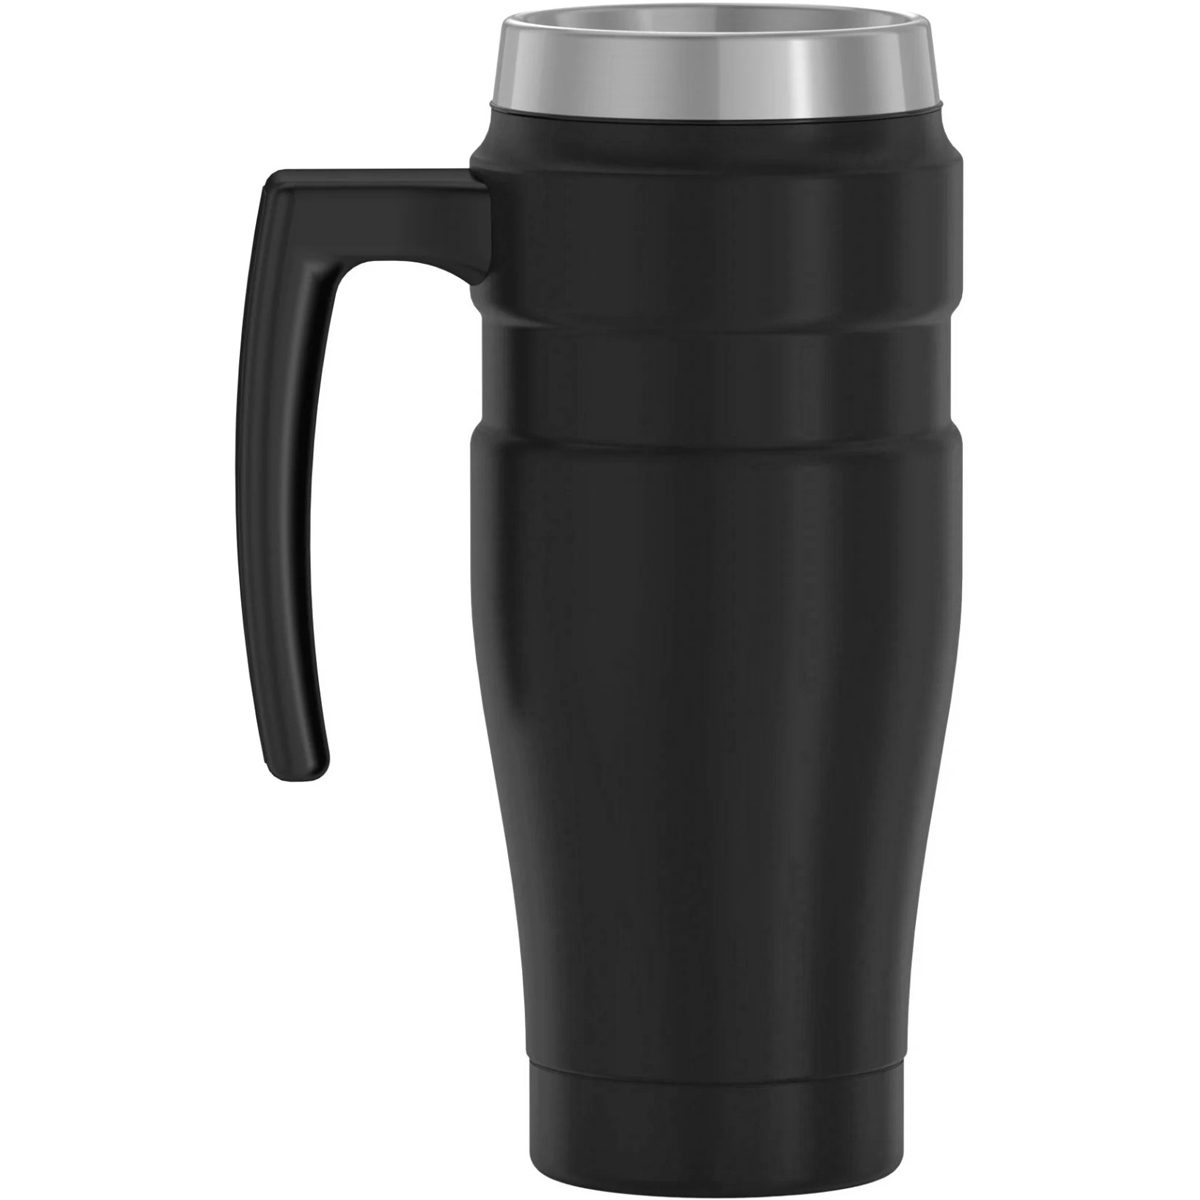 thumbnail 3 - Thermos 16 oz. Stainless King Insulated Stainless Steel Travel Mug with Handle